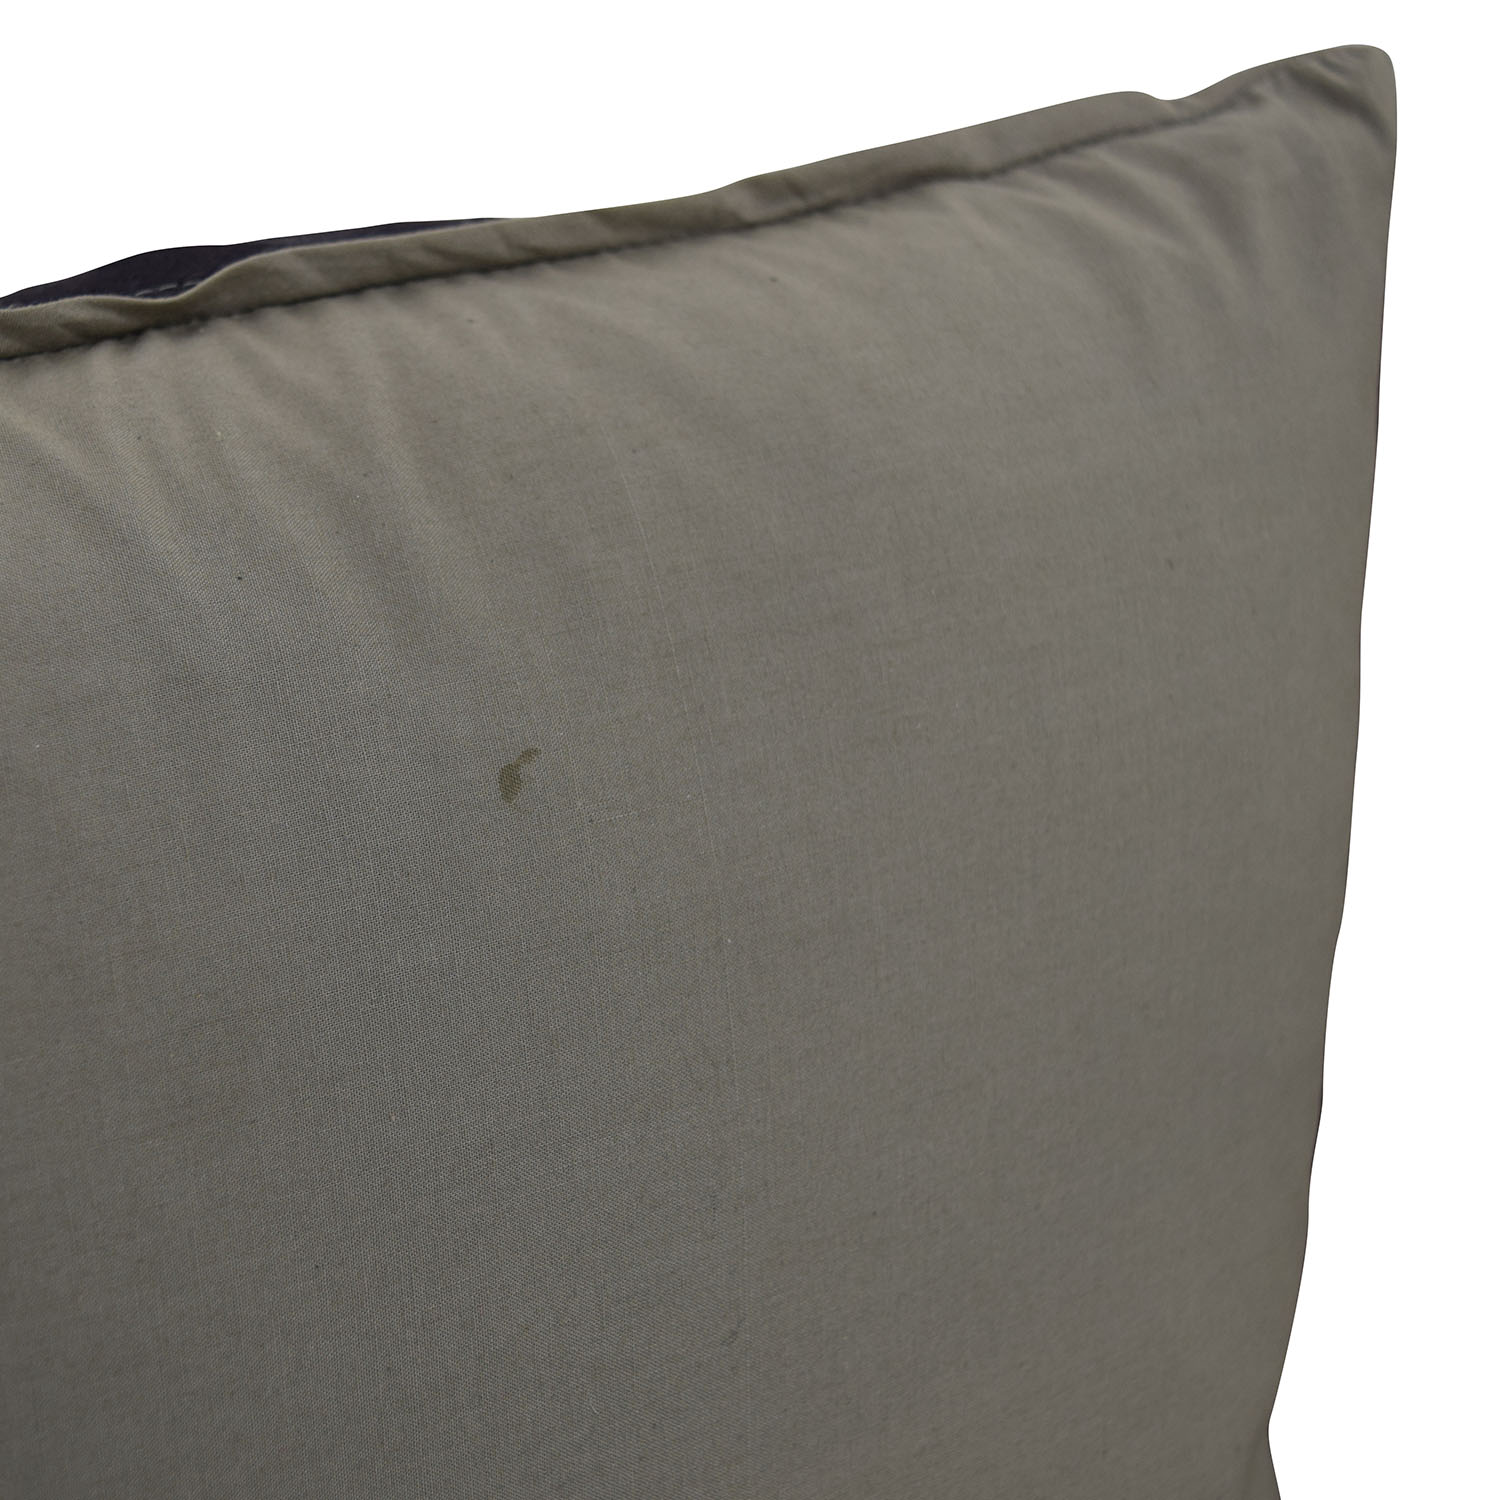 Striped Black Cream and Grey Toss Pillows